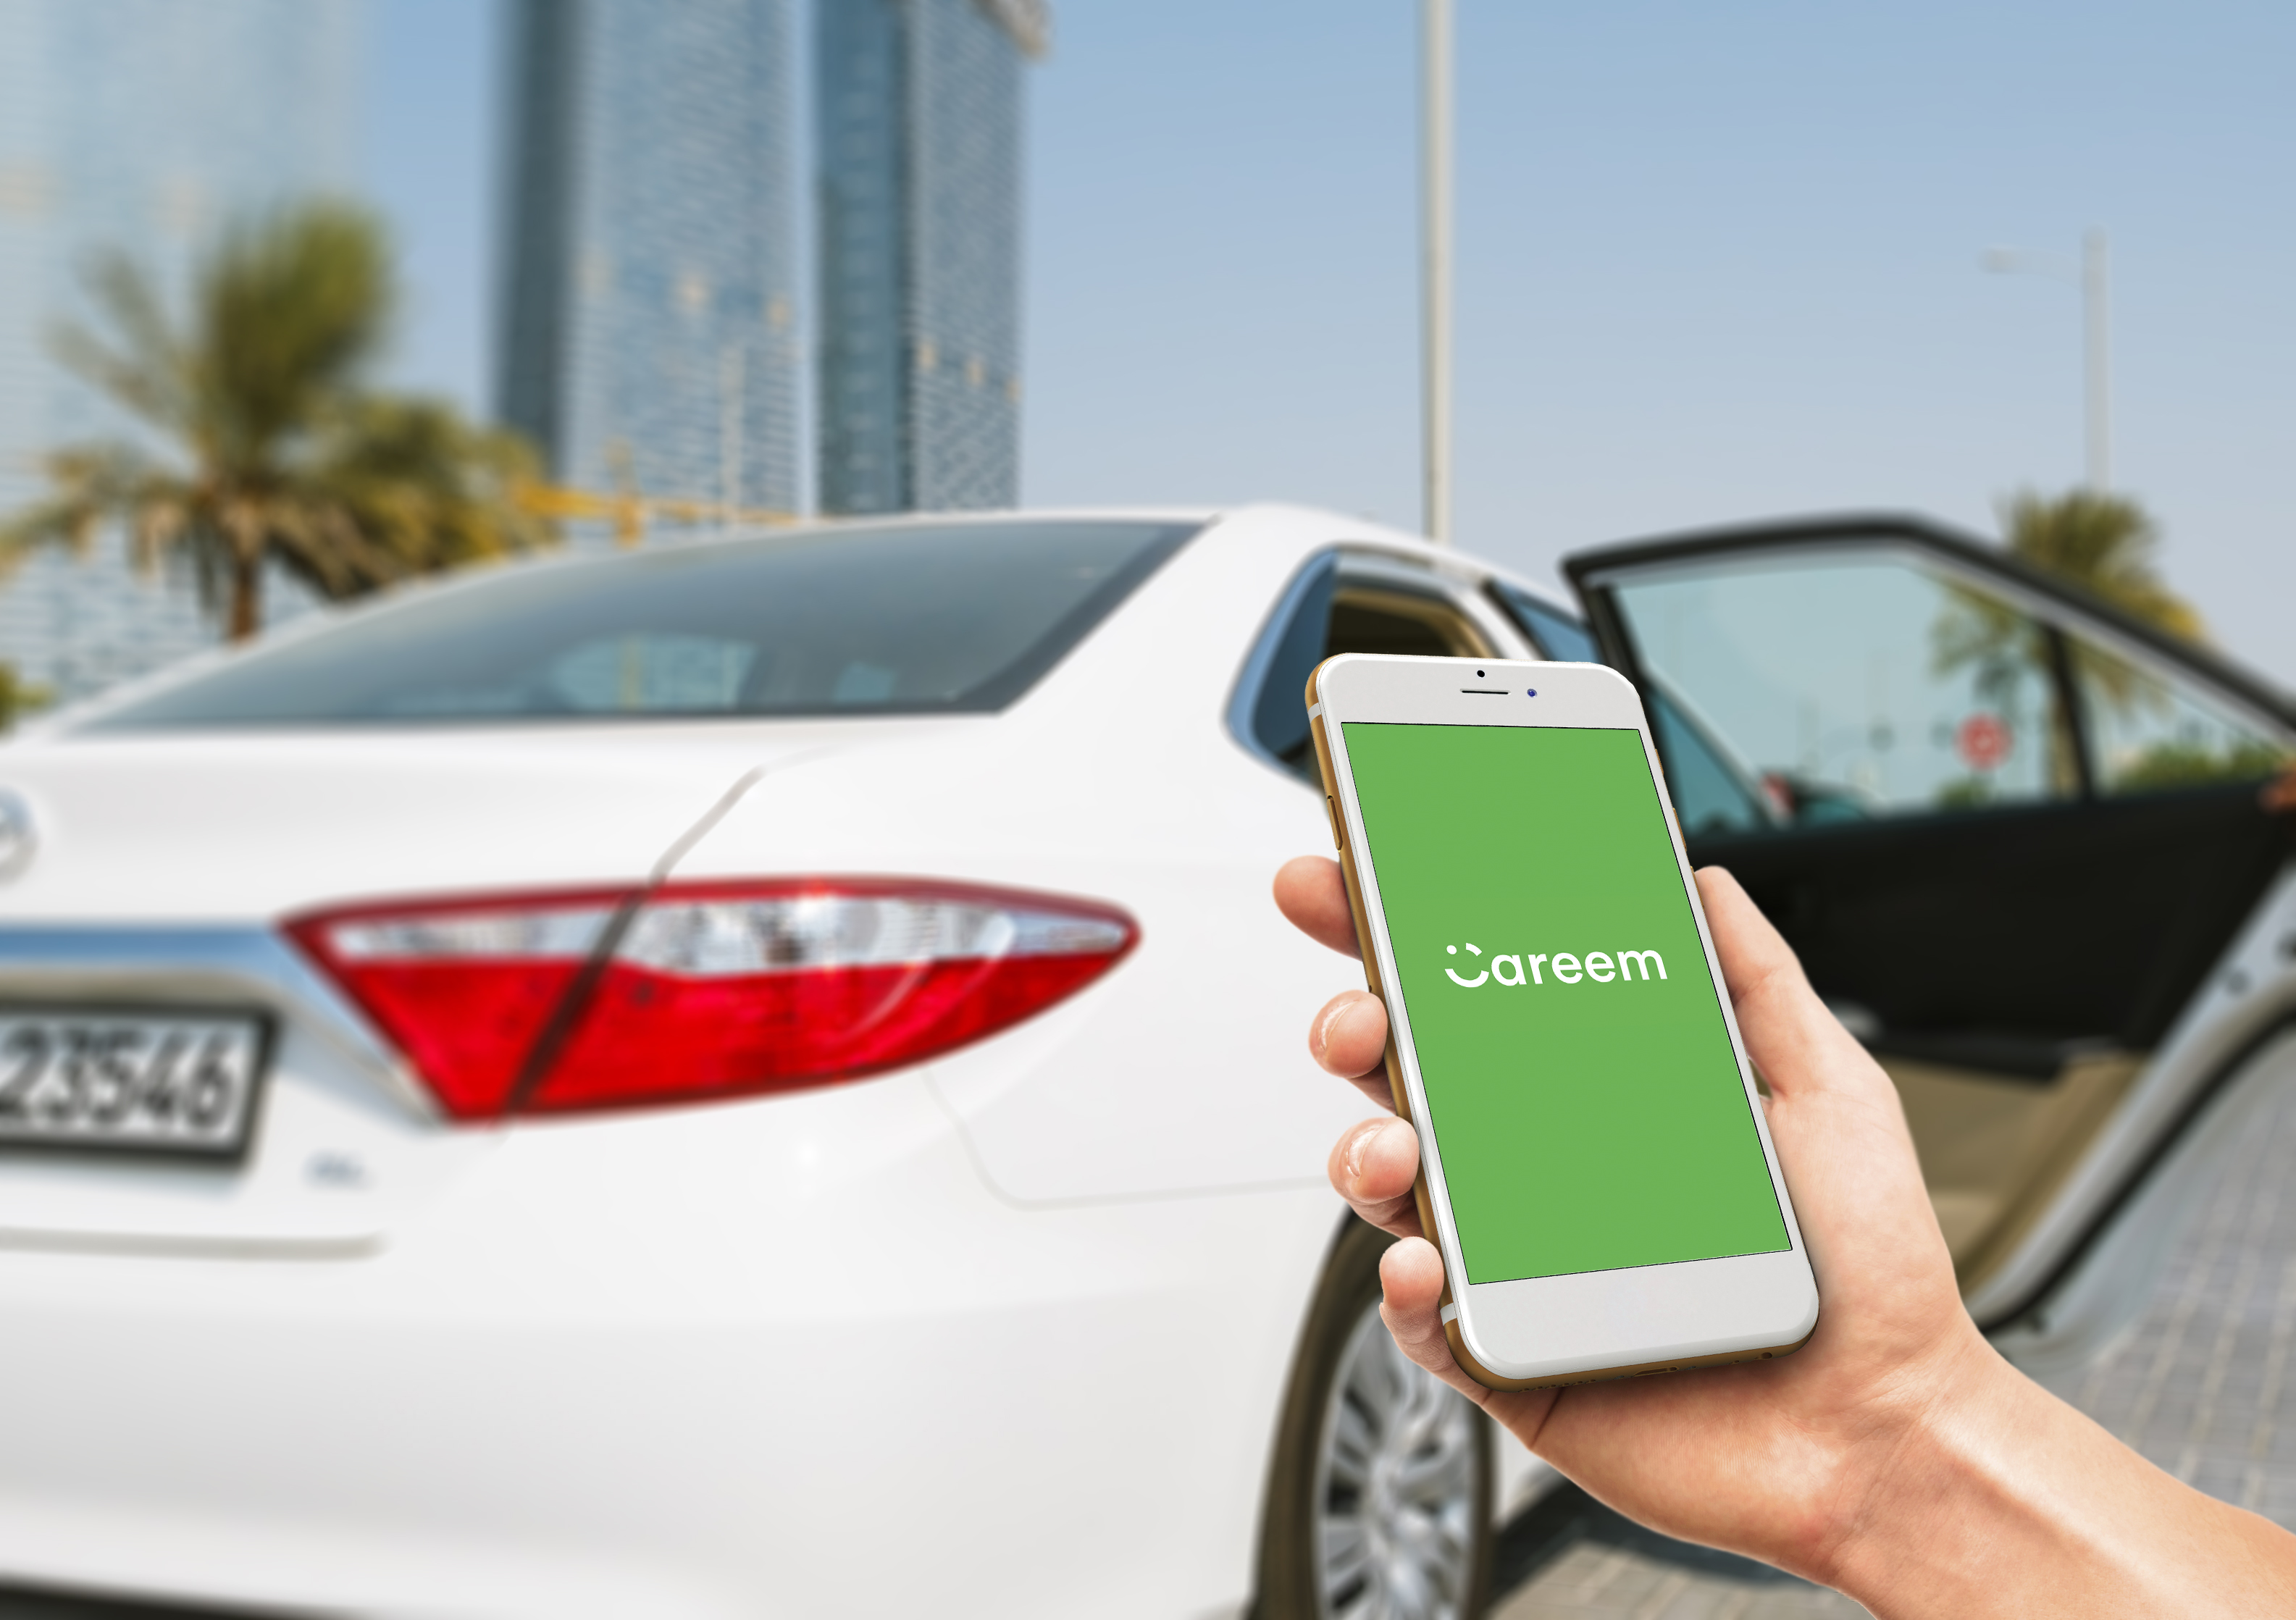 Careem releases statement admitting to massive data leak